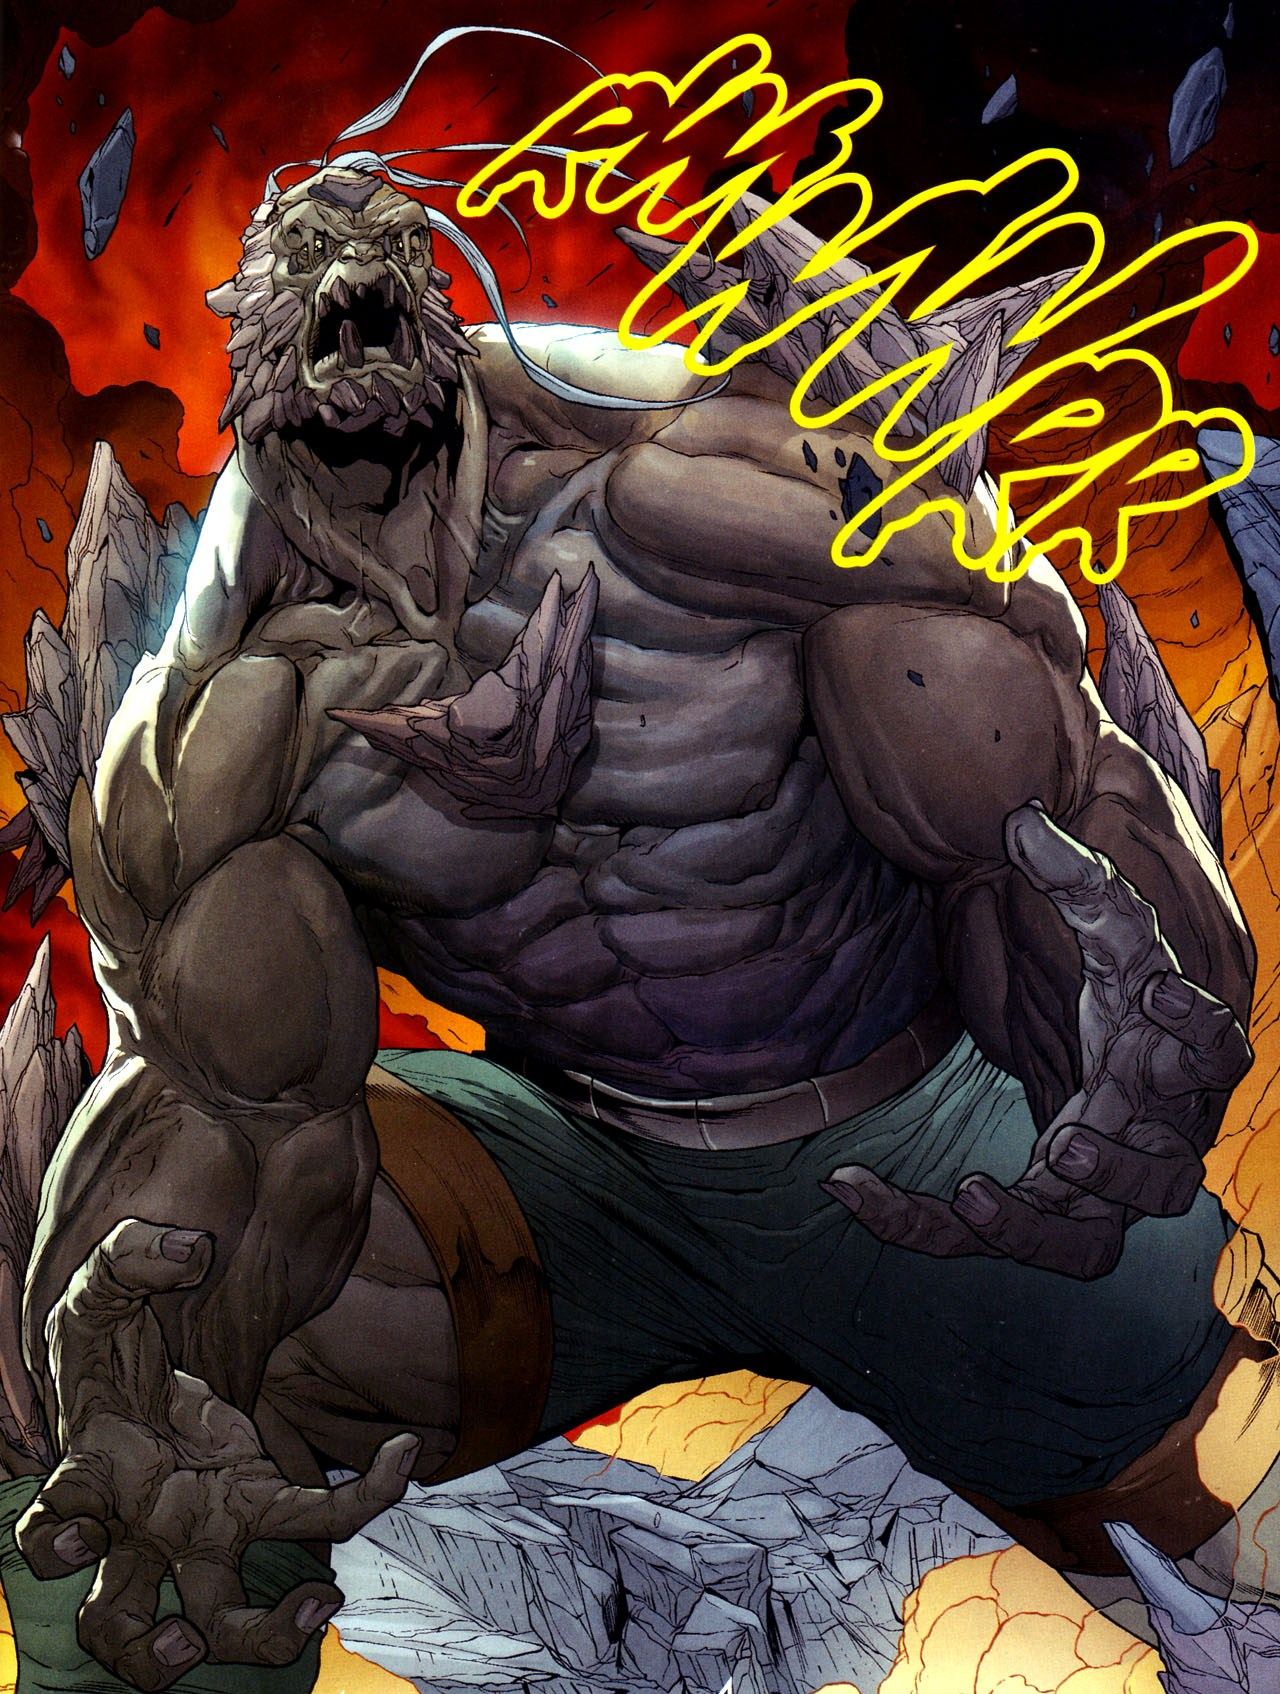 http://img1.wikia.nocookie.net/__cb20140701124926/comicdc/es/images/f/fa/610353-doomsday.jpg